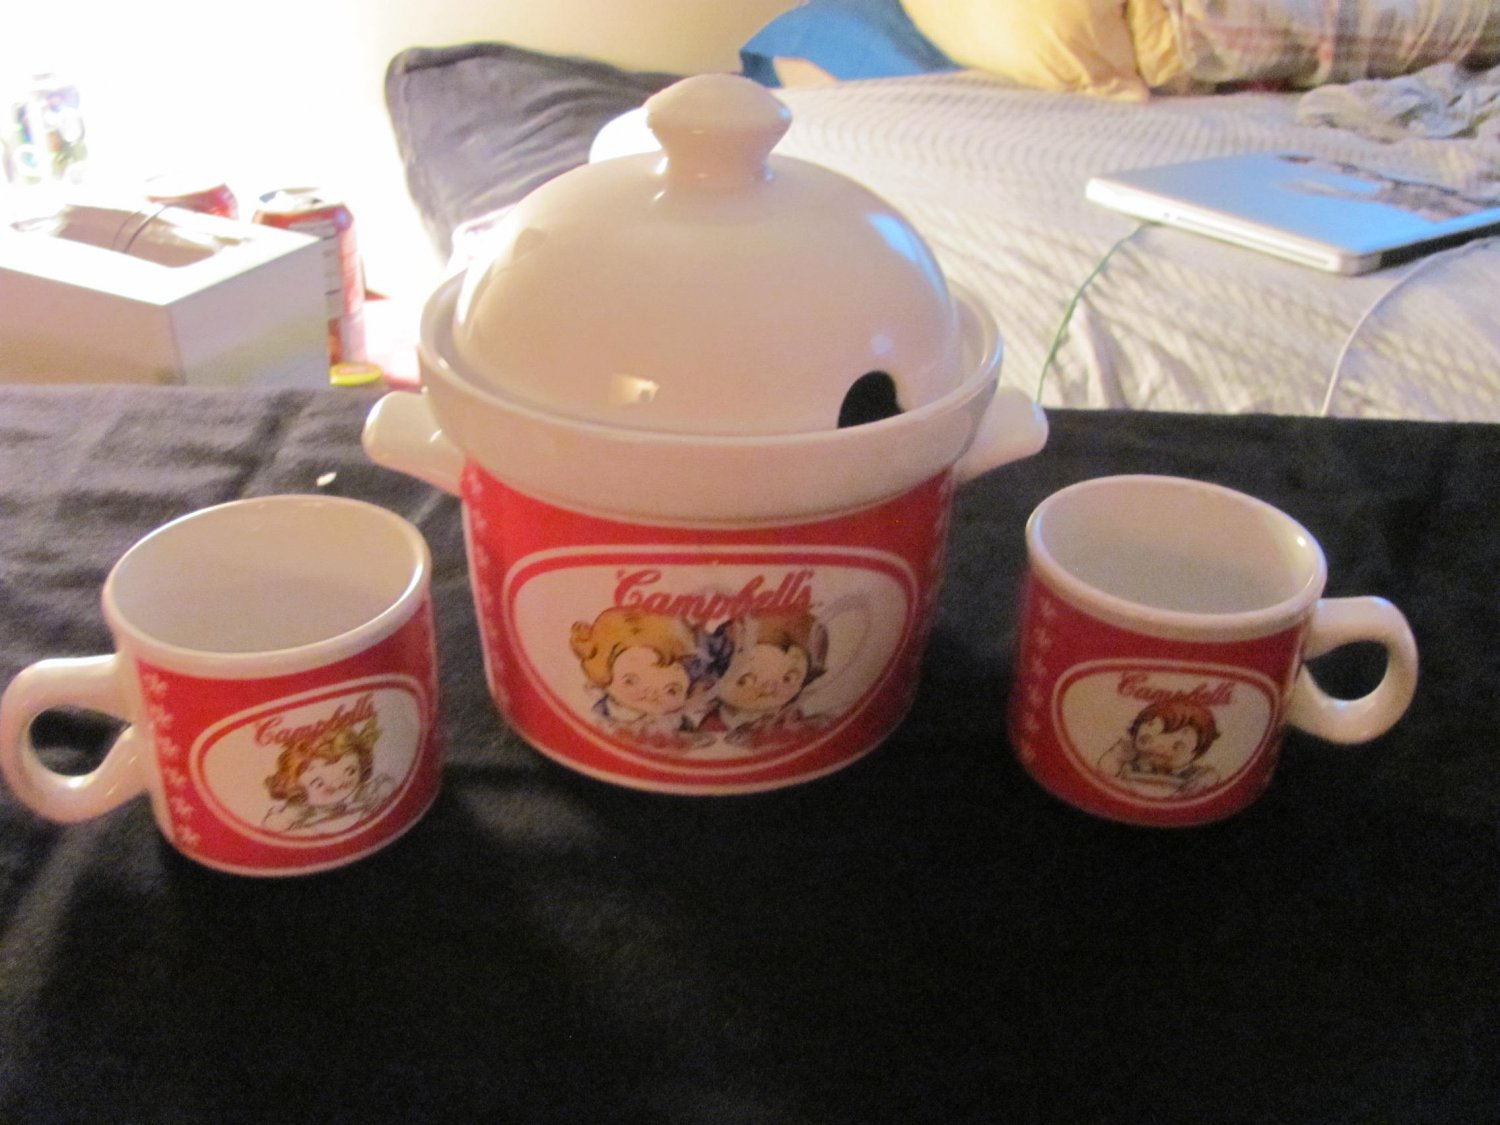 Campbells Soup Tureen and Two Mugs.